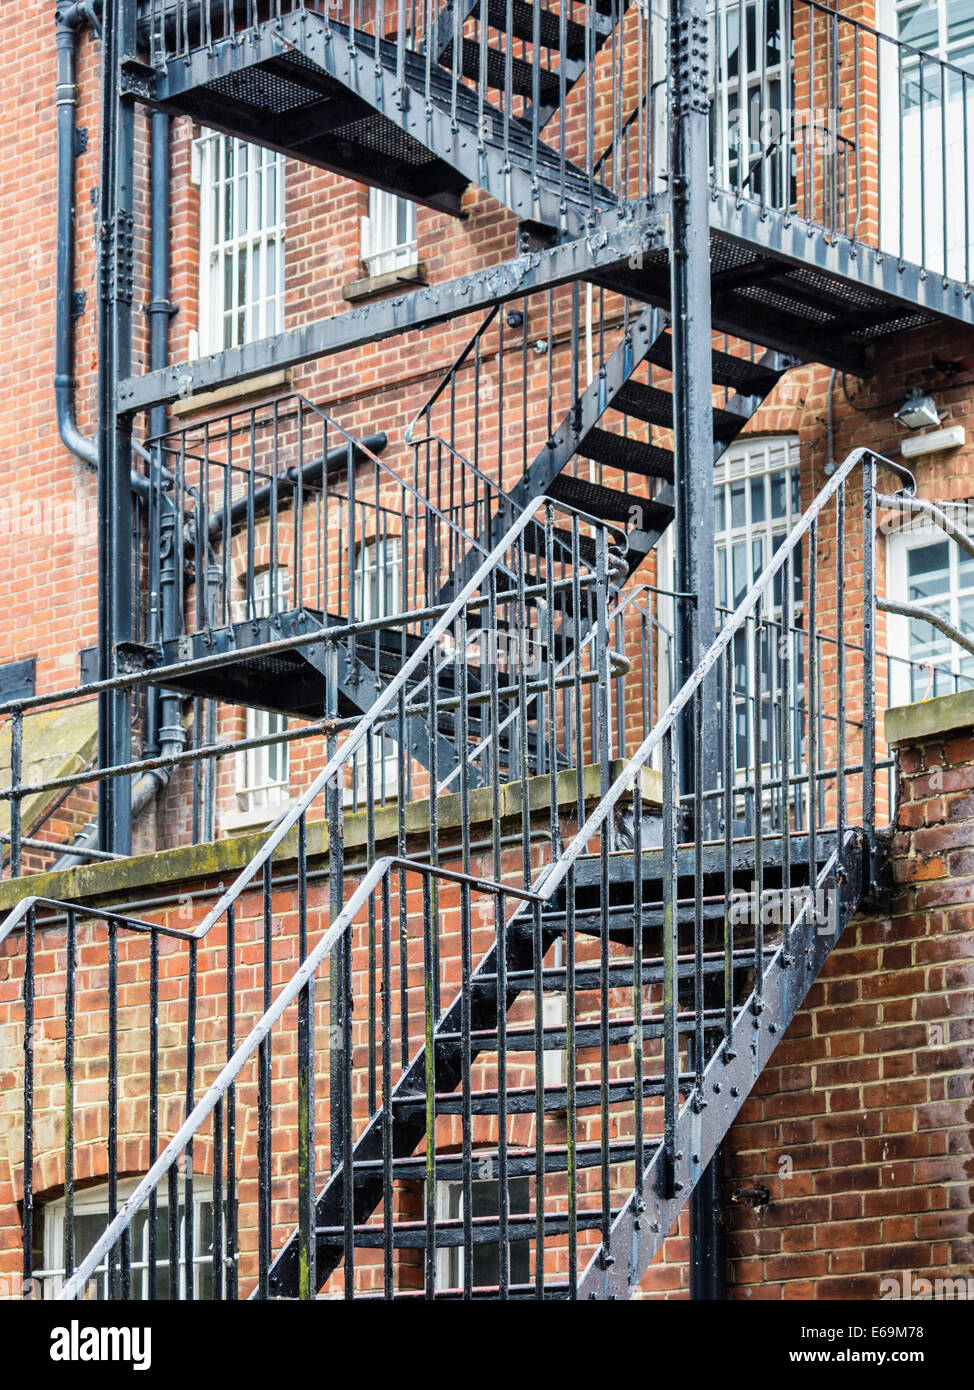 Charming External Metal Staircase Fire Escape On Old Brick Building, Twickenham,  Middlesex, Greater London